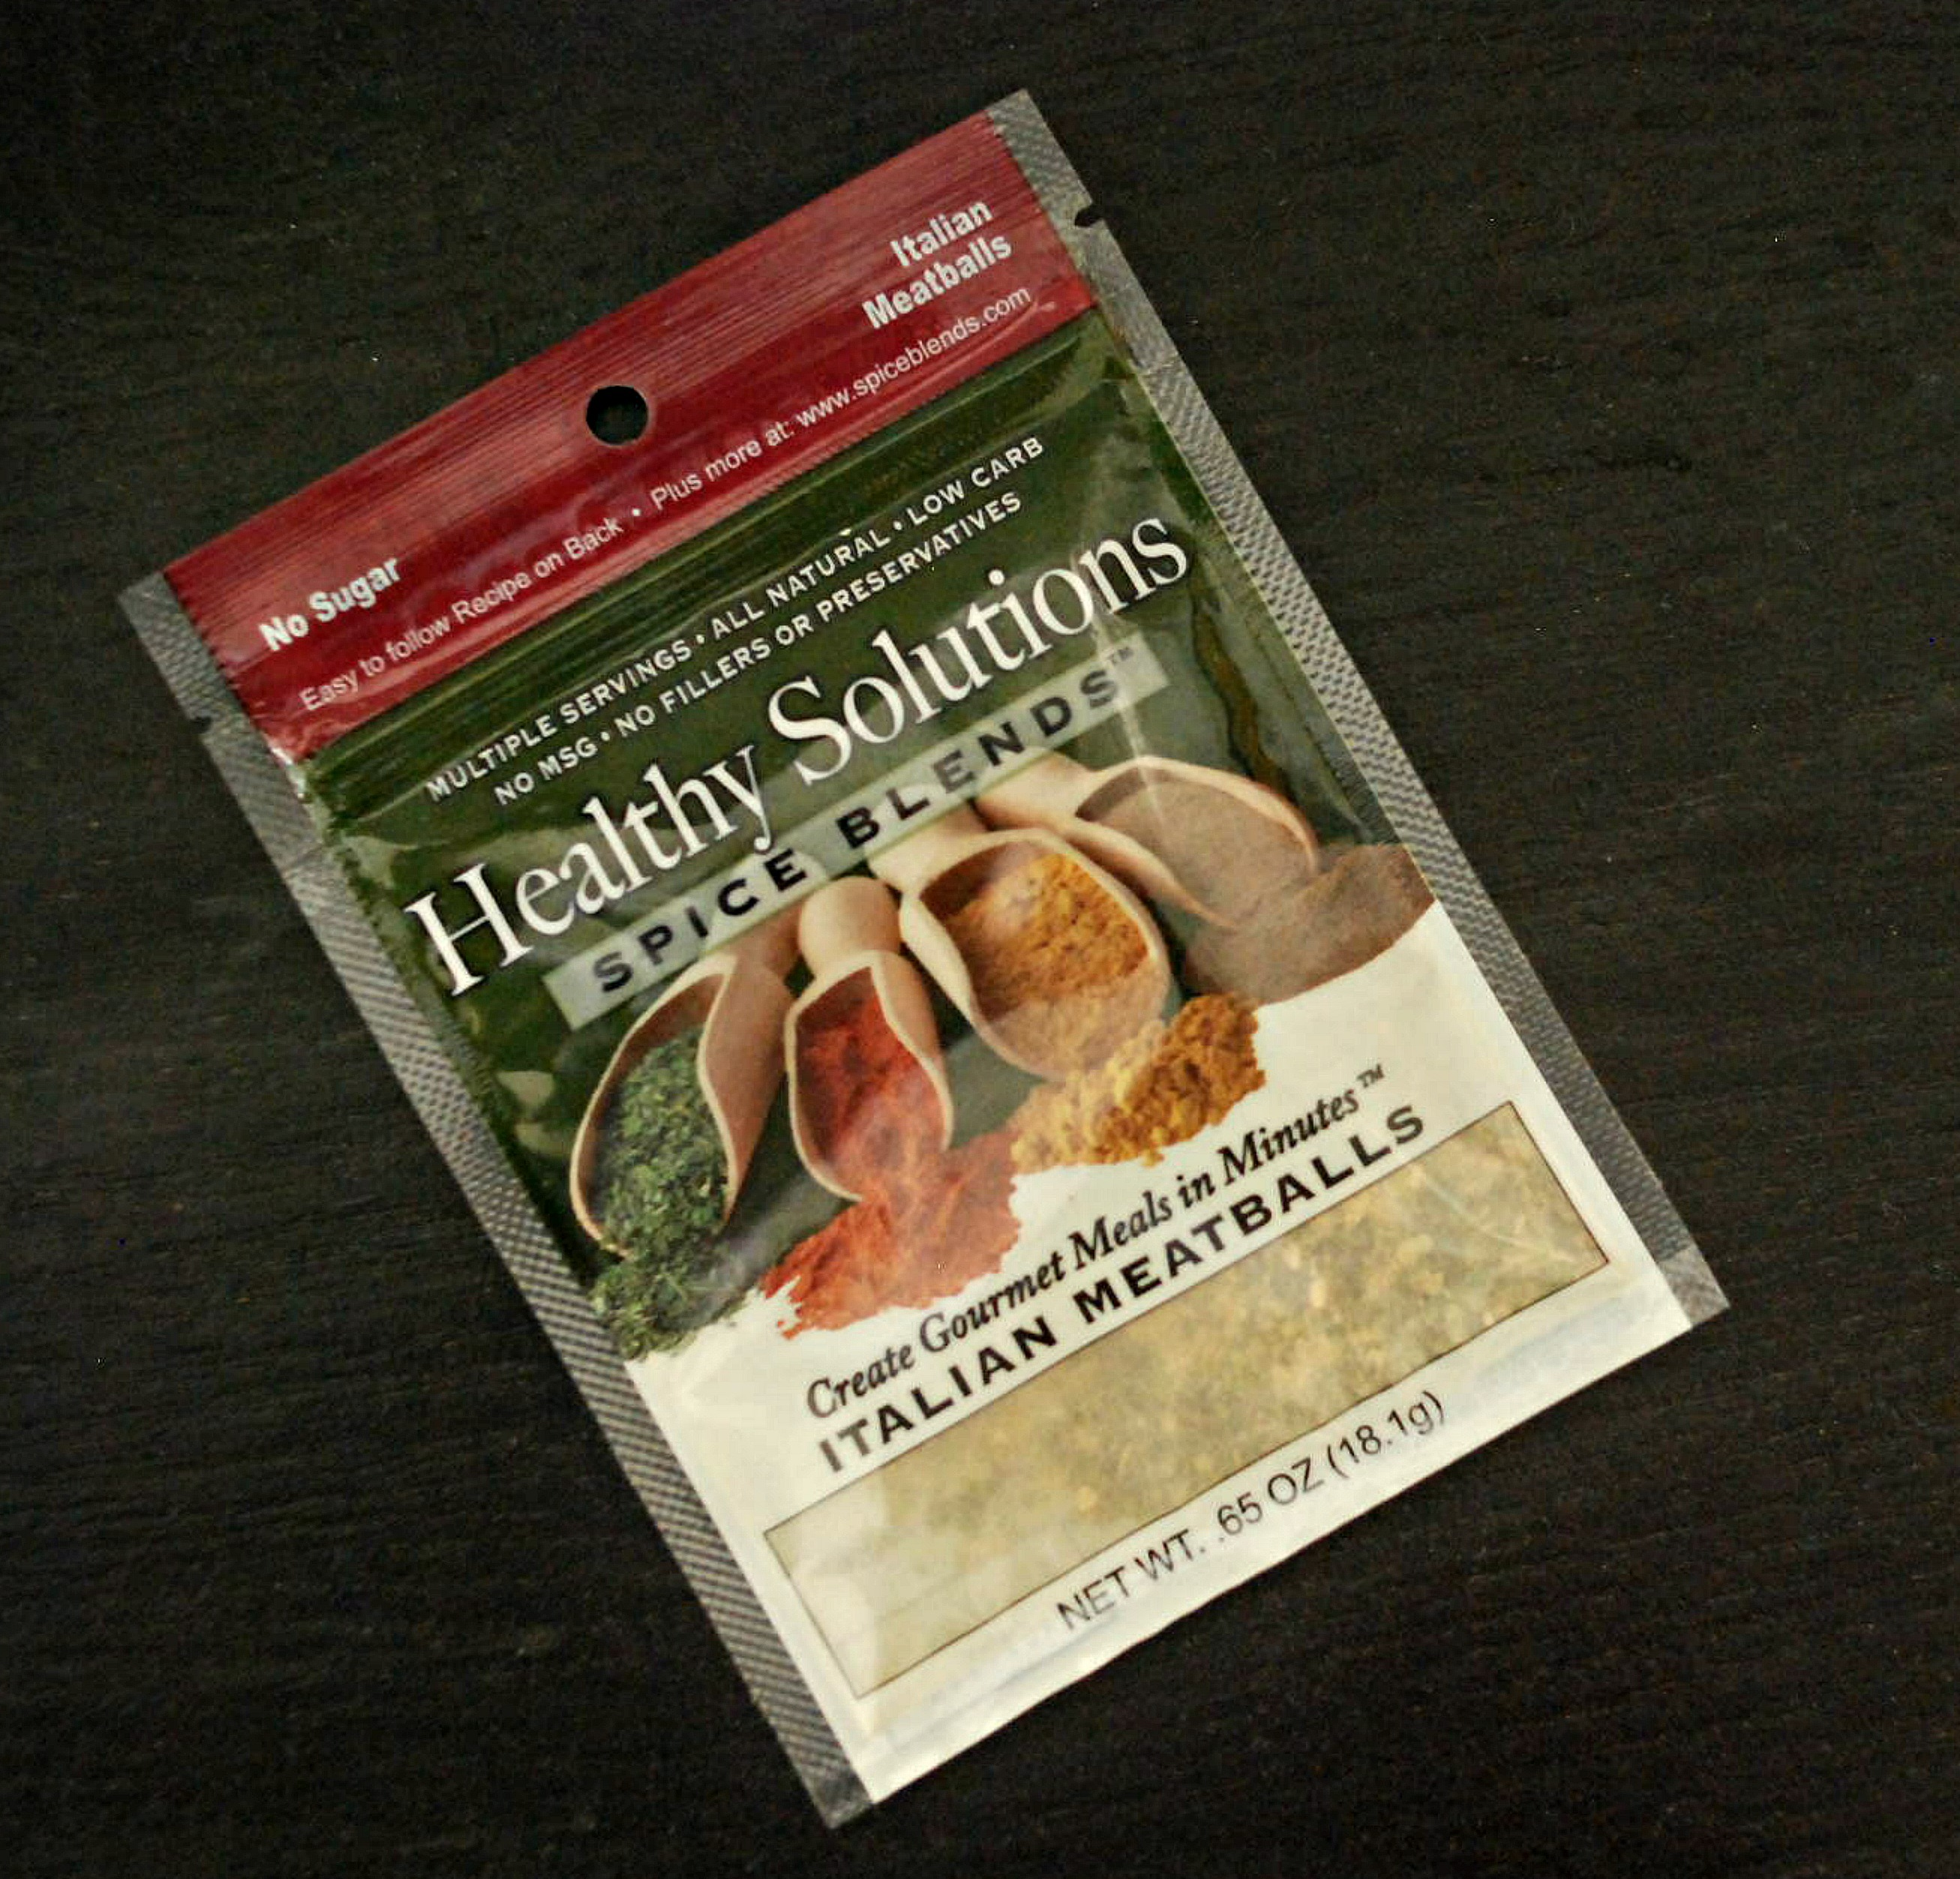 Meatball Italiano Healthy Solutions Spice Blends